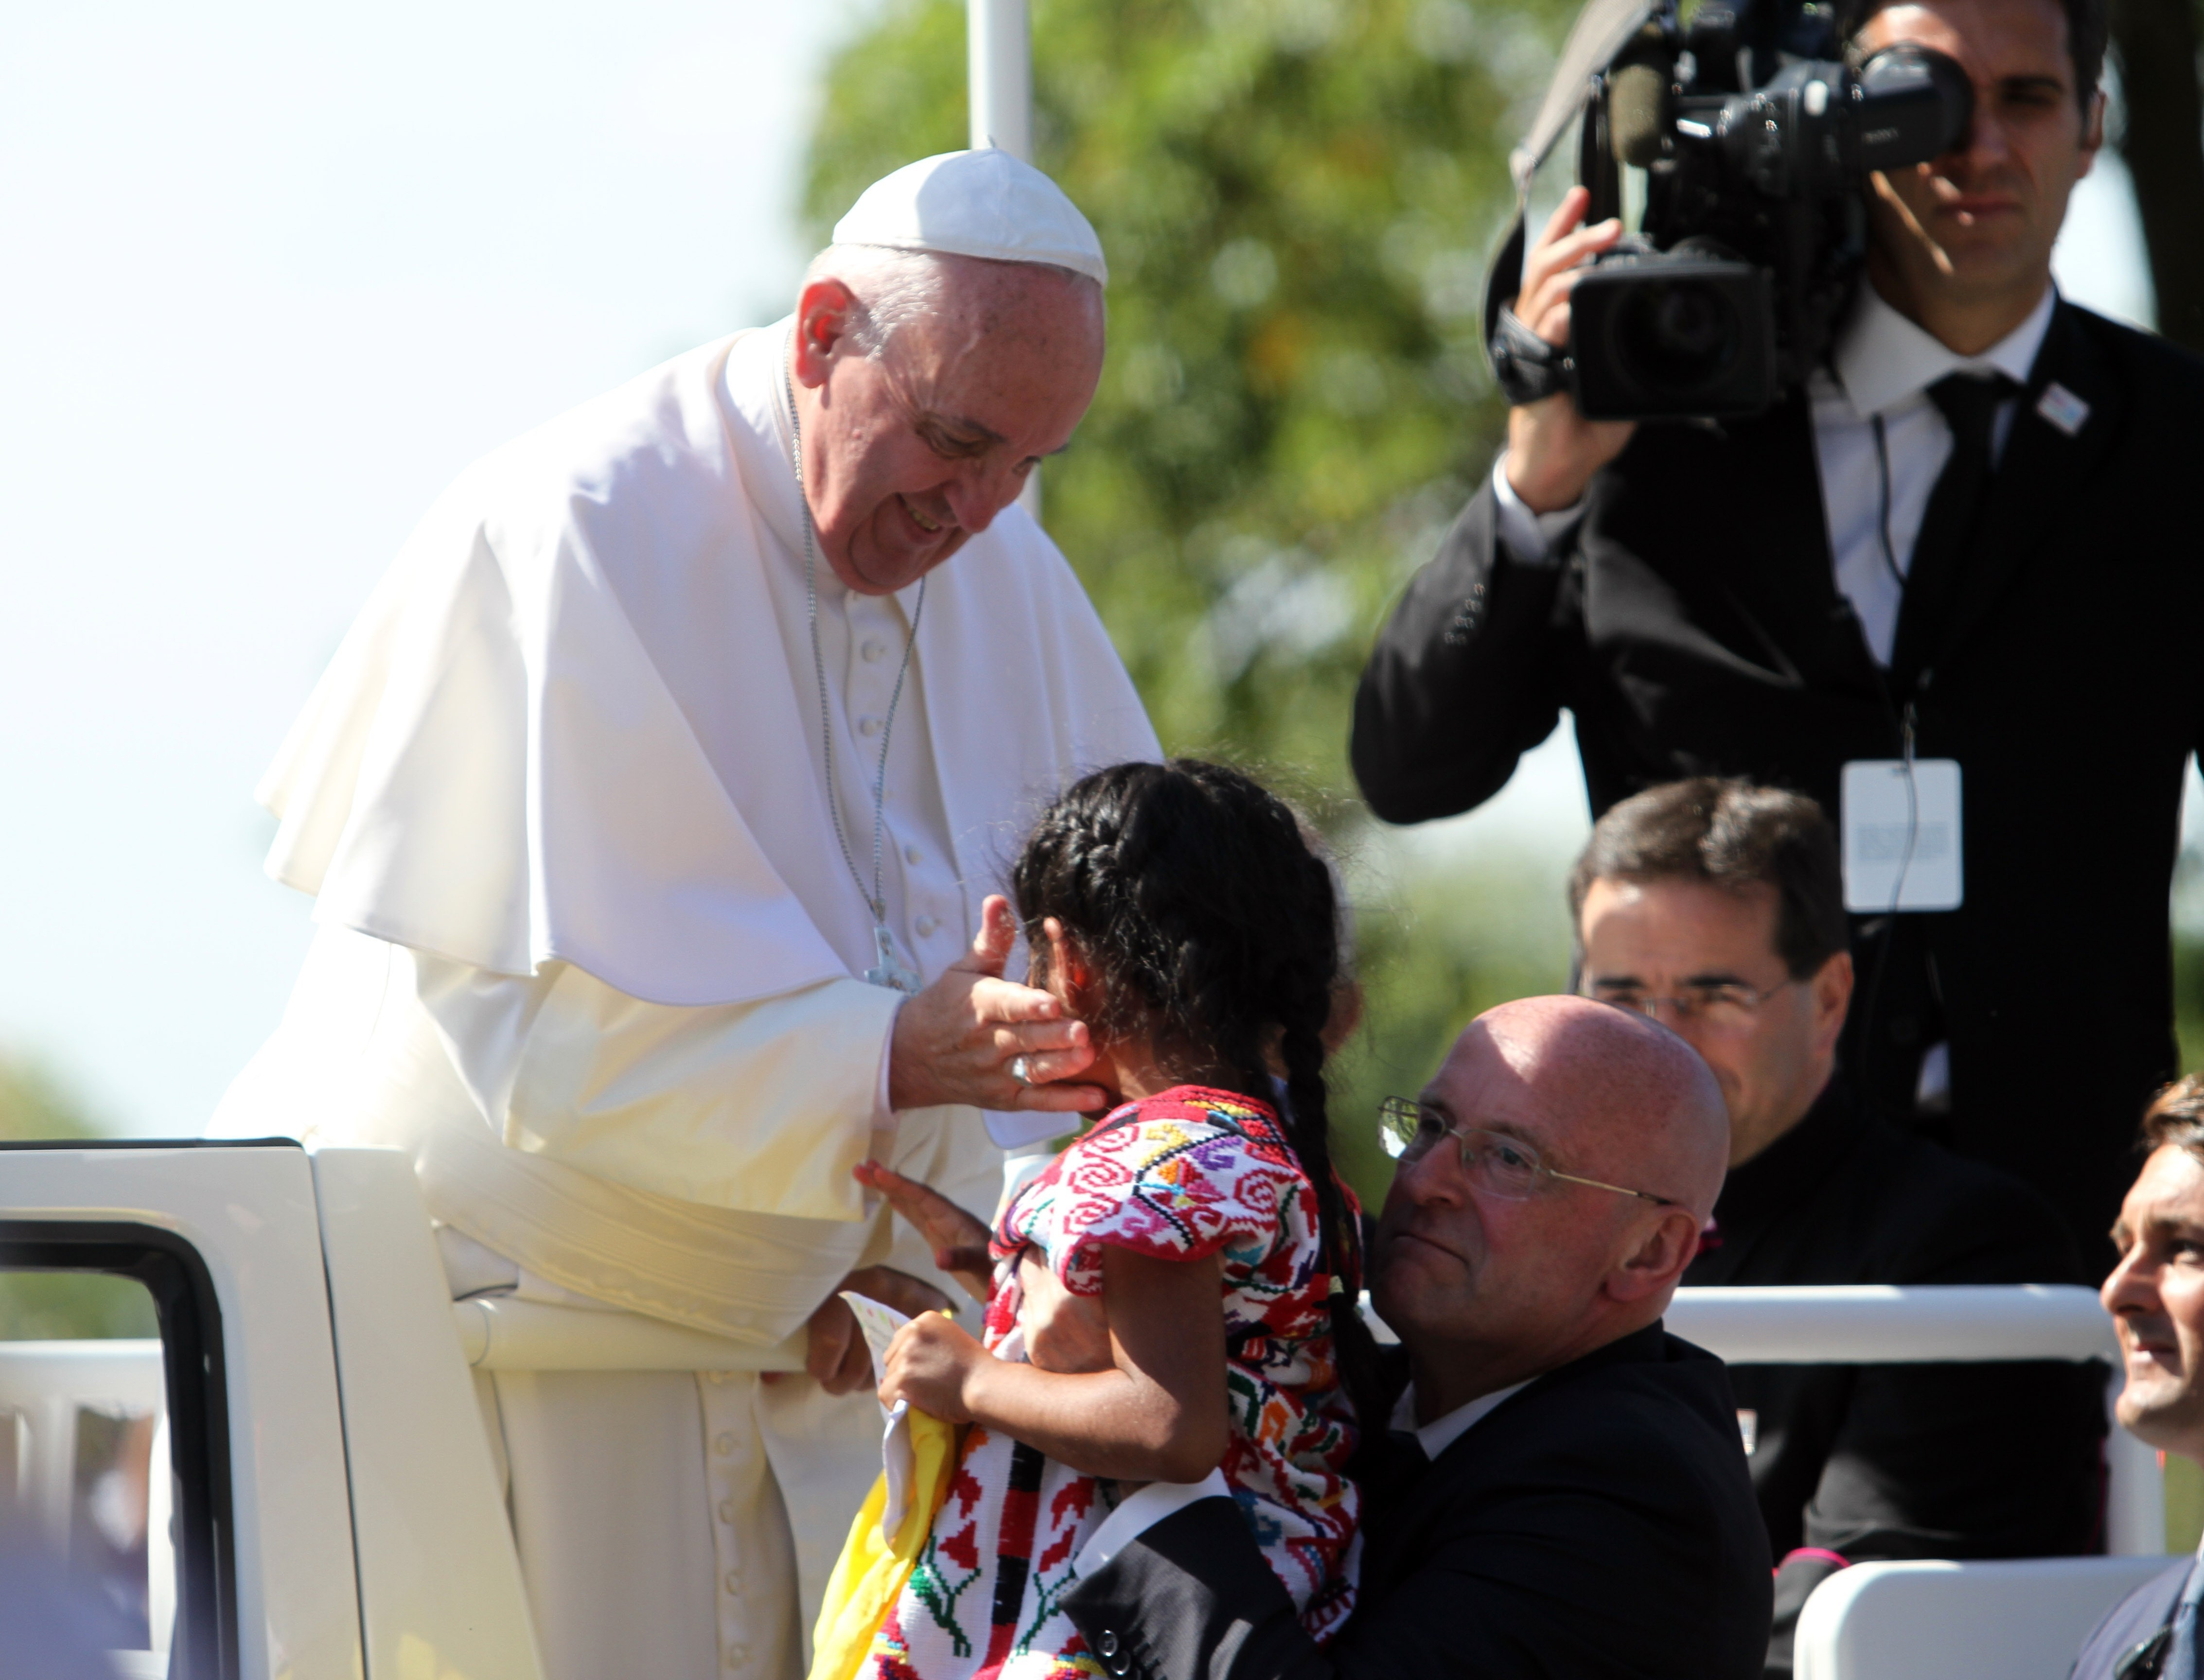 WASHINGTON D.C, UNITED STATES - SEPTEMBER 23: Pope Francis takes care with a little girl, named Sopihe, after she broke security measures and ran towards him during a parade in Washington D.C, United States on September 23, 2015. (Photo by Esra Kaymak/Anadolu Agency/Getty Images)